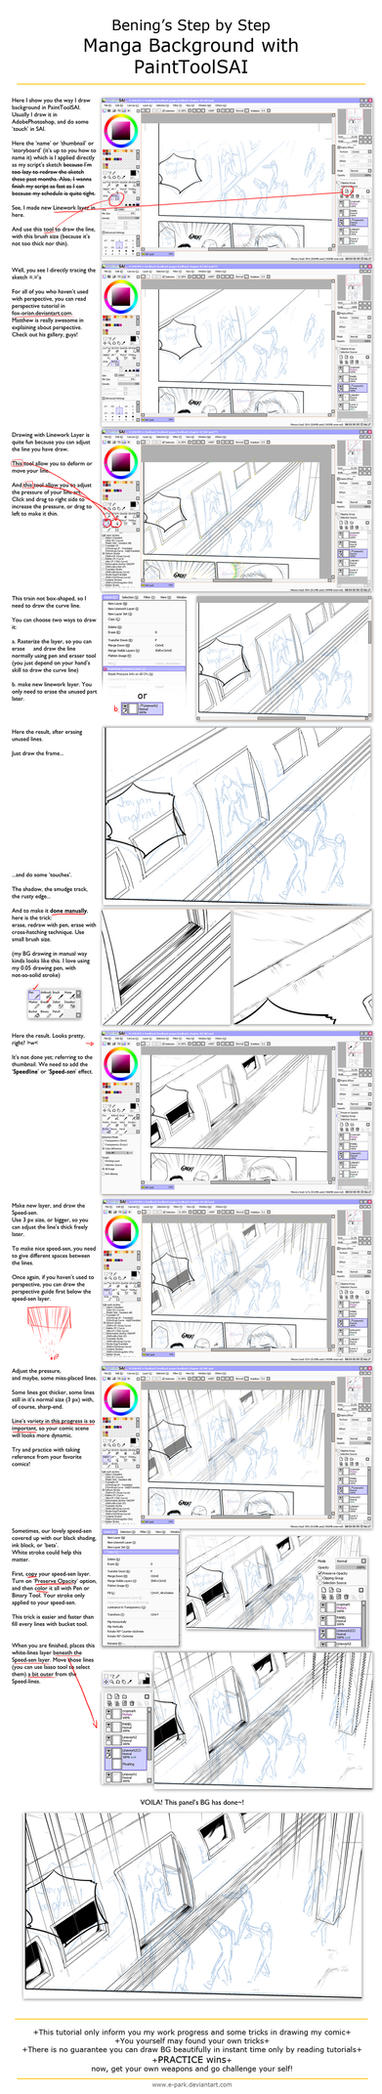 Drawing Manga Background with SAI by E-park